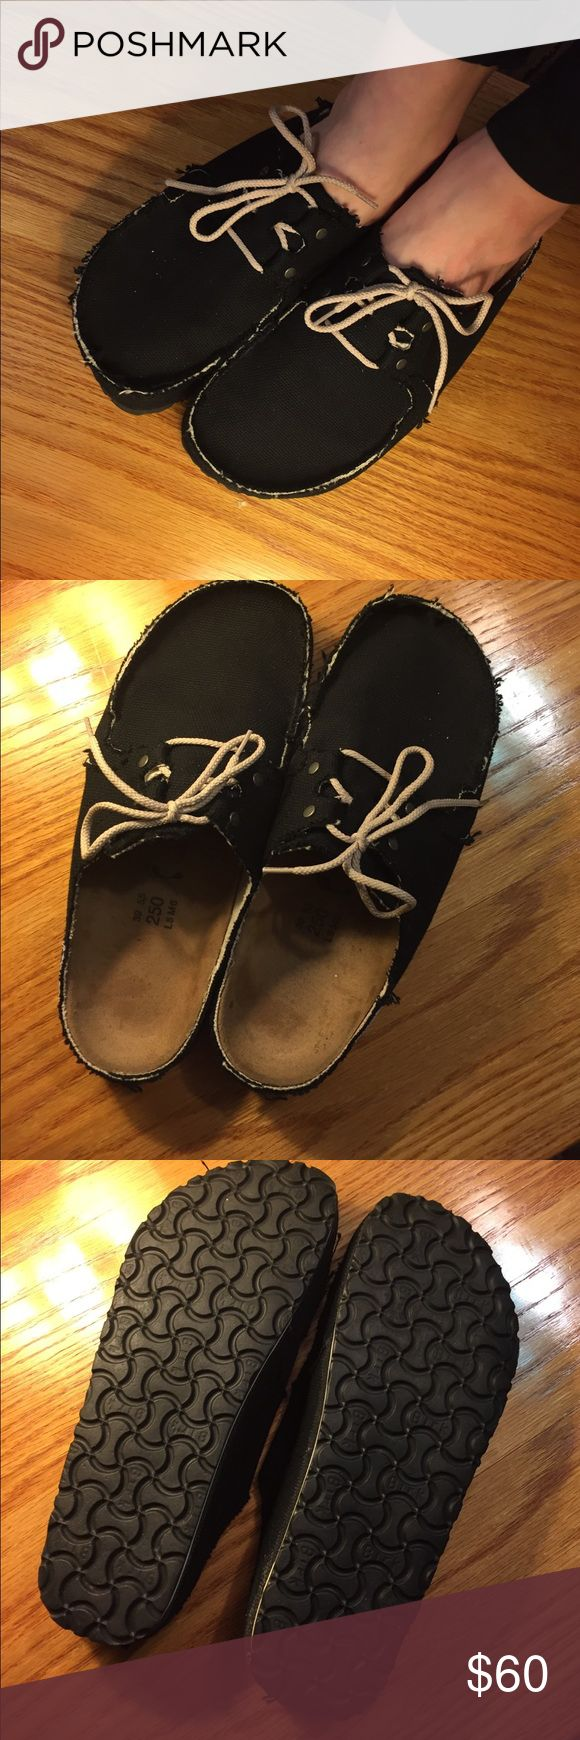 Black boat shoe style Birkenstock clogs Hipster black canvas boat shoe style Birkenstock clogs. Brand new condition! Birkenstock Shoes Mules & Clogs